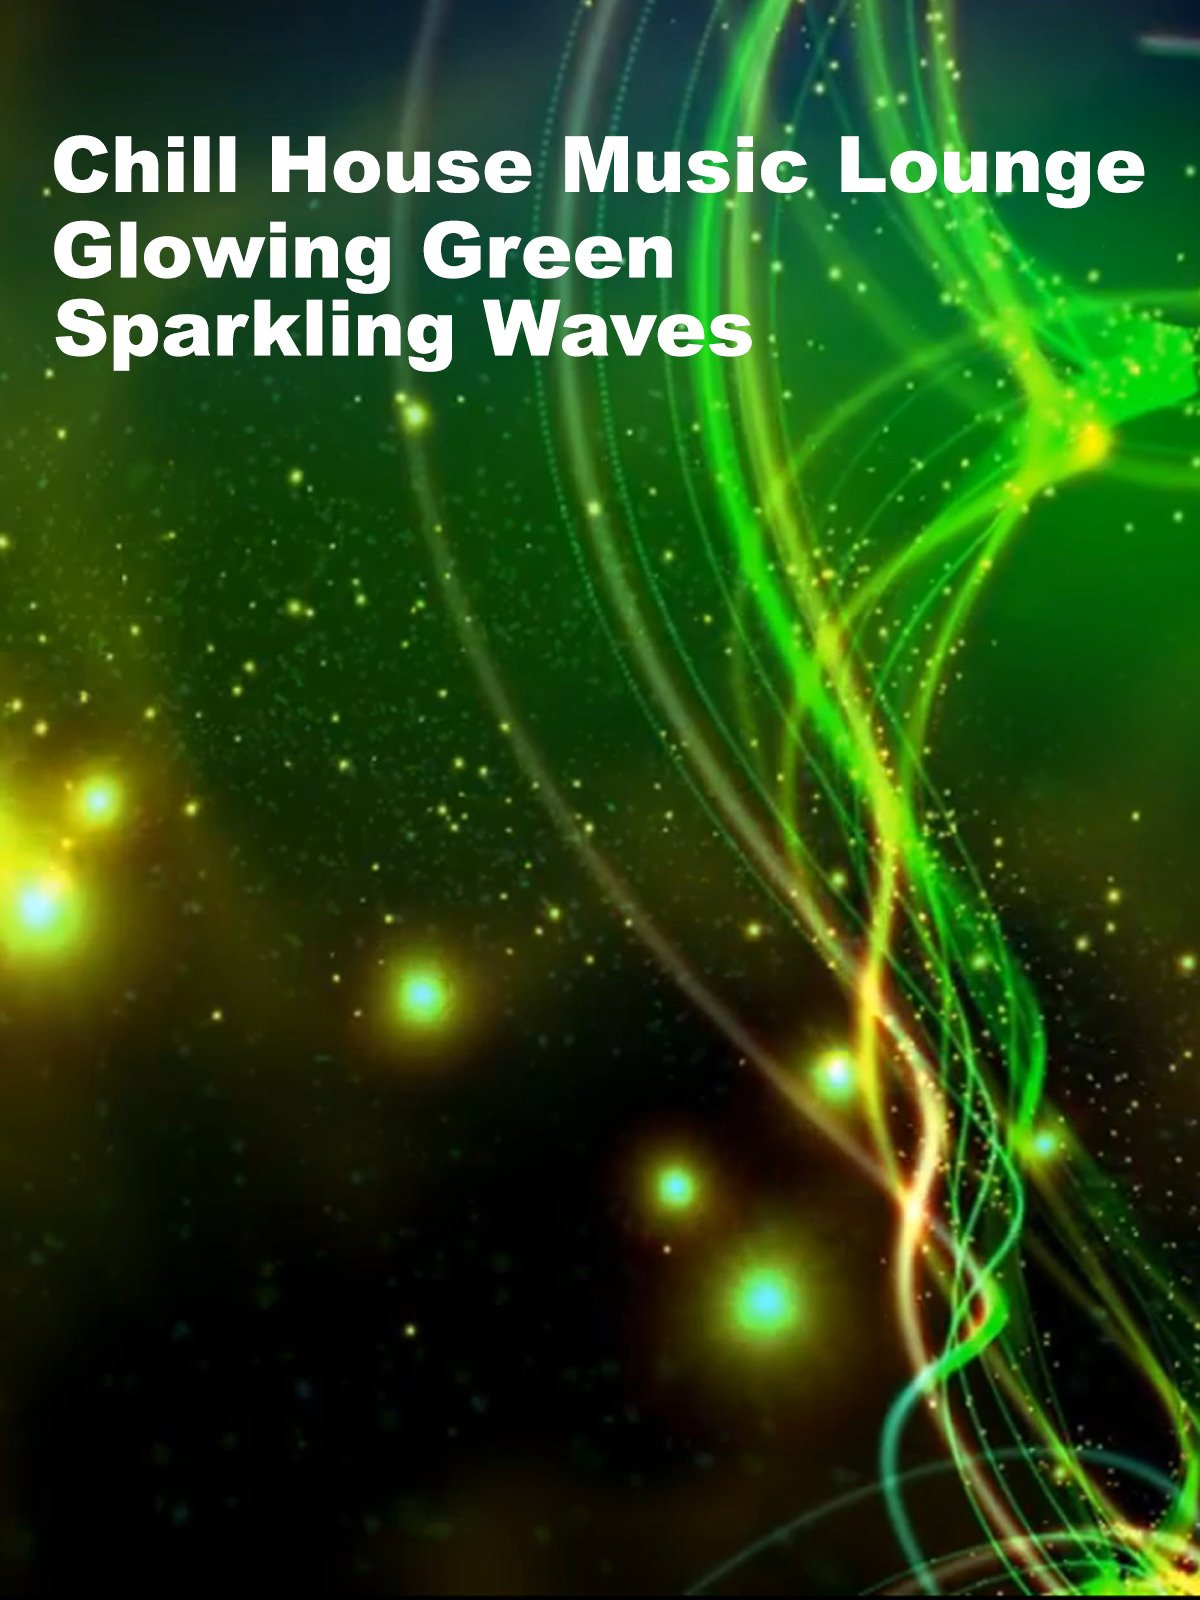 Chill House Music Lounge Glowing Green Sparkling Waves